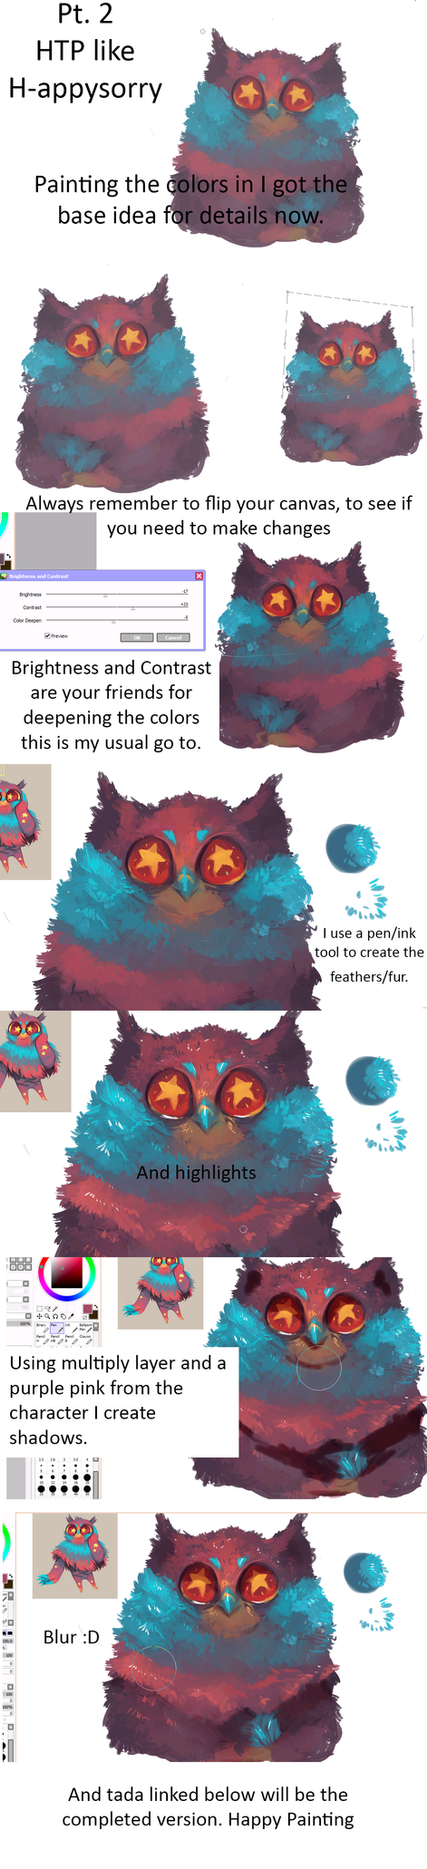 How to Paint like me Pt 2 by H-appysorry